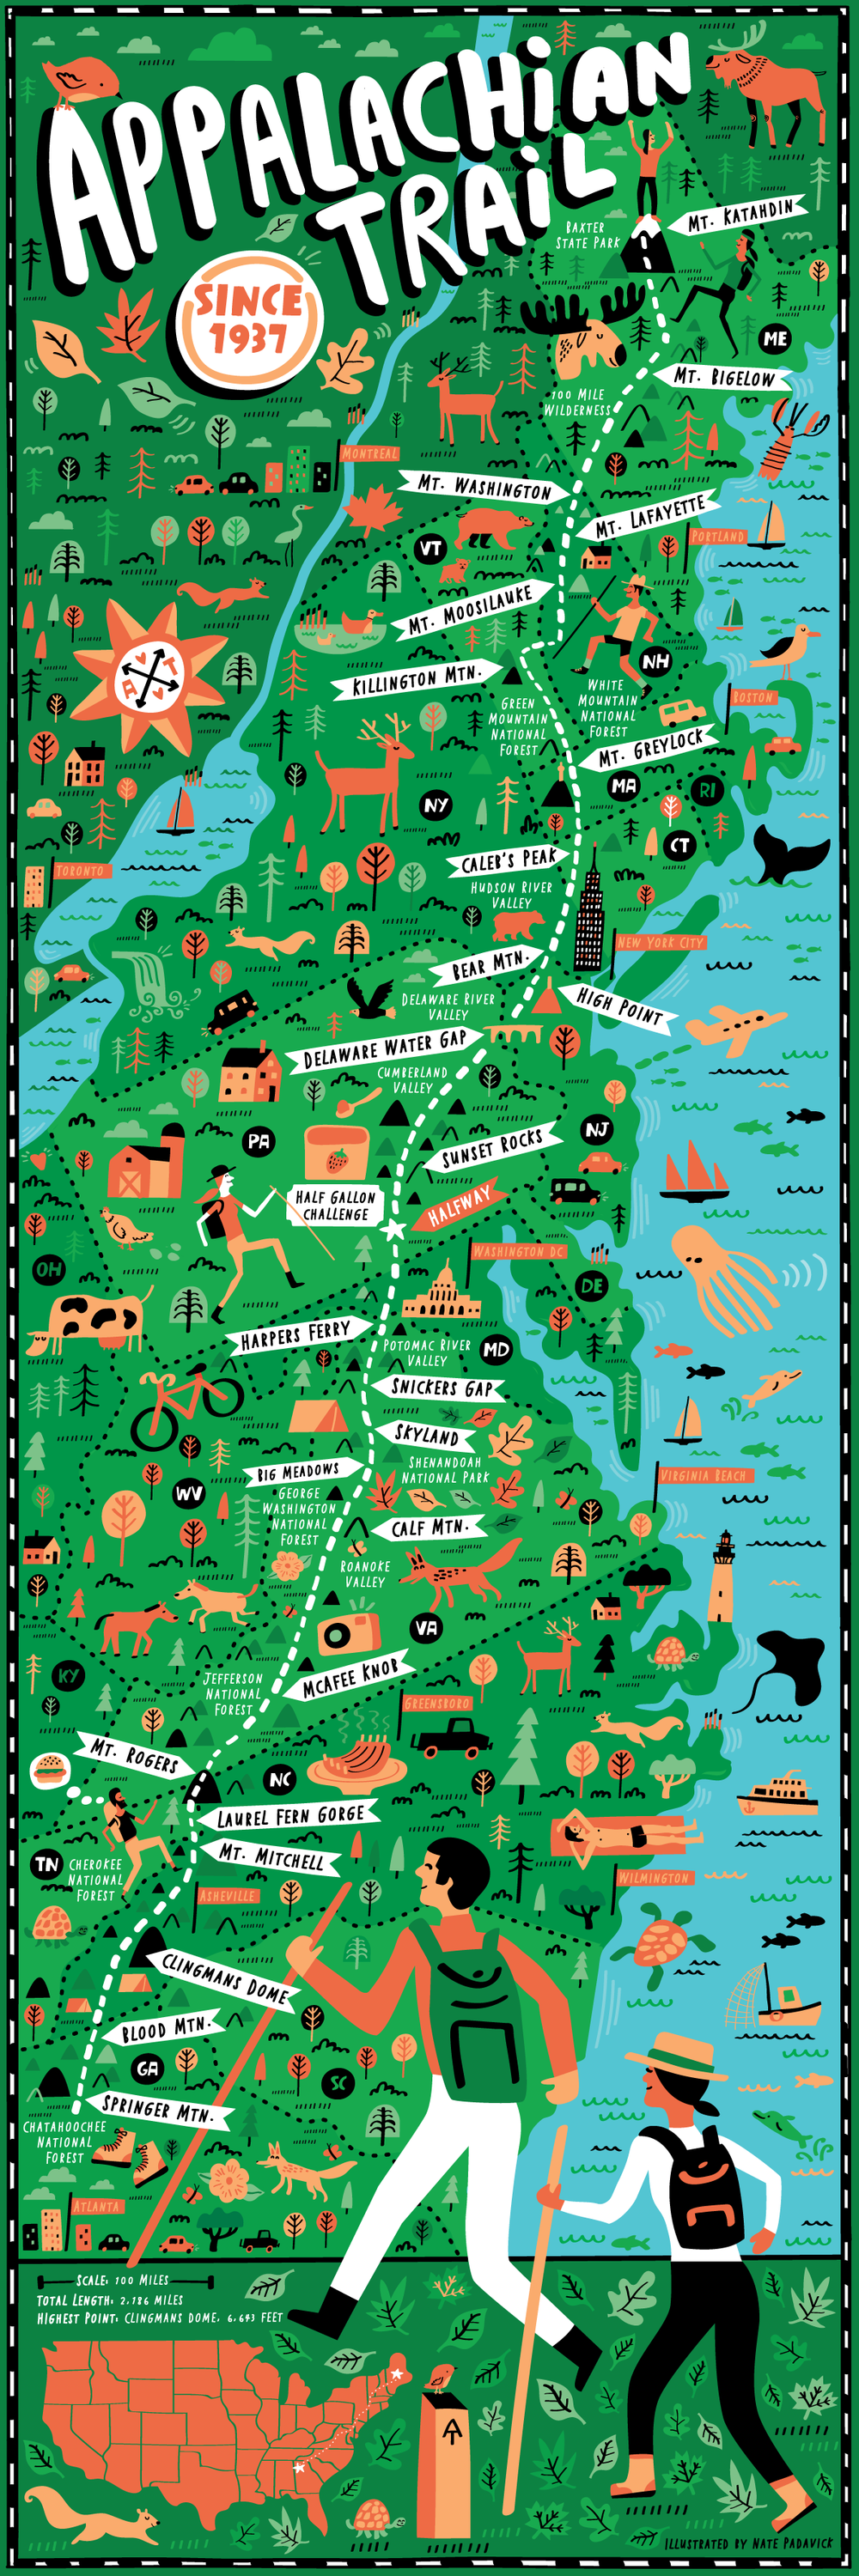 Appalachian Trail map illustrated by Nate Padavick | Hiking in 2018 ...